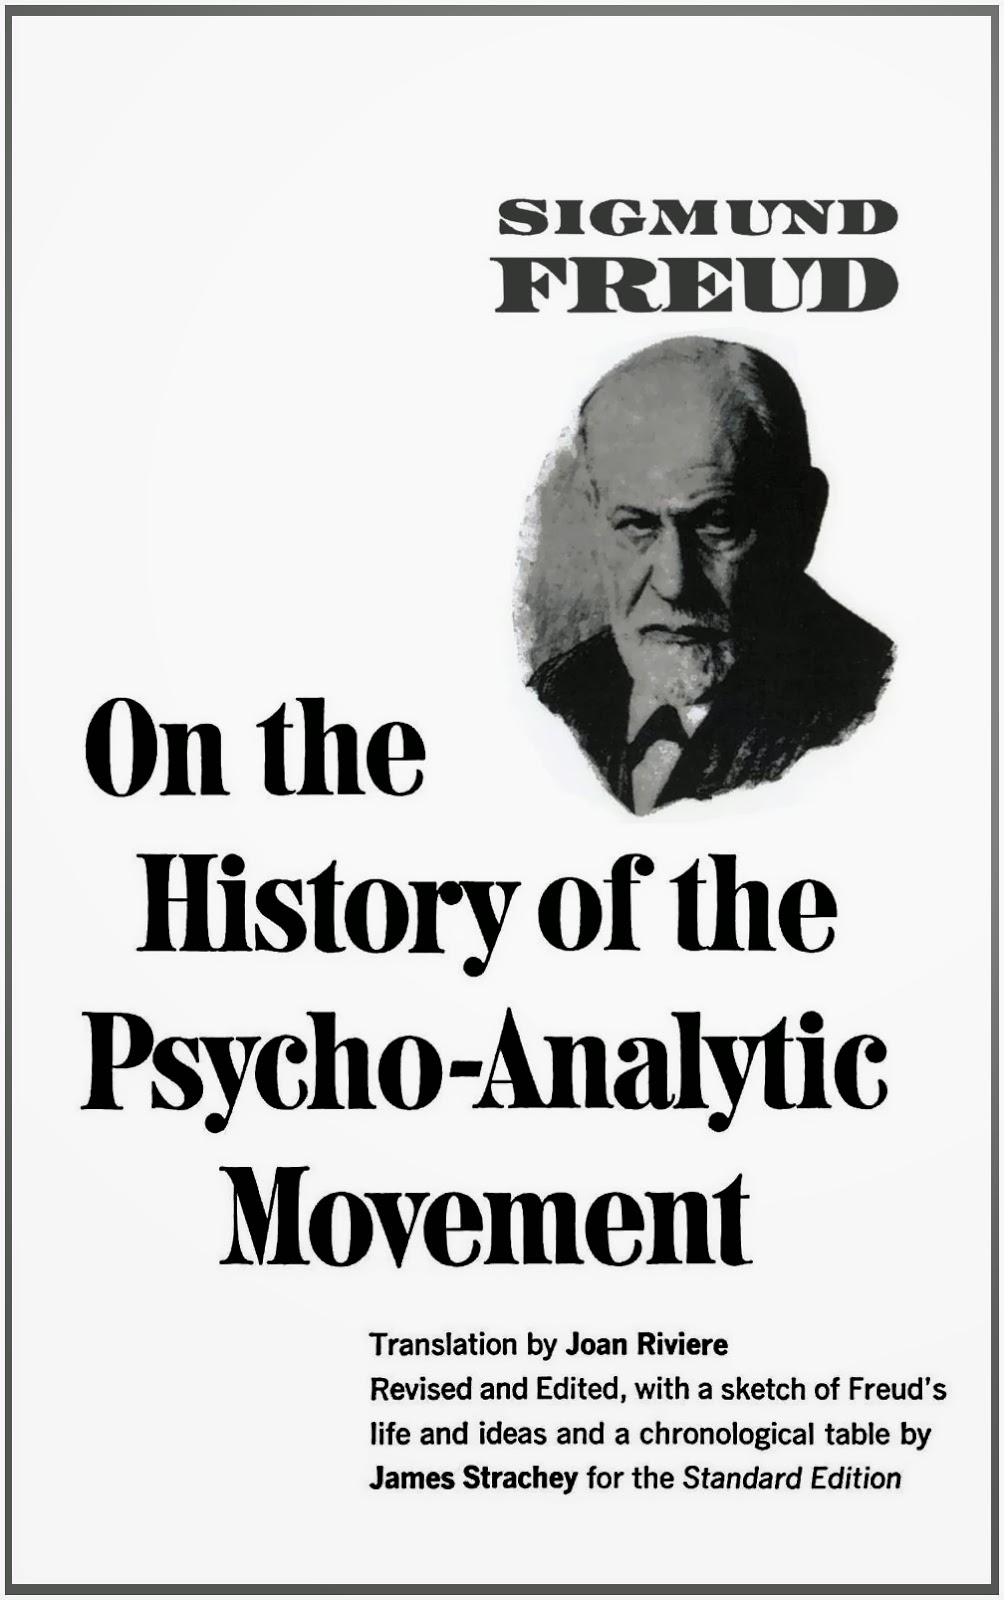 a reflection of the life and works of sigmund freud Sigmund freud's work had a lasting influence on psychology journey through his amazing life, his most astonishing theories, and his remarkable legacy.